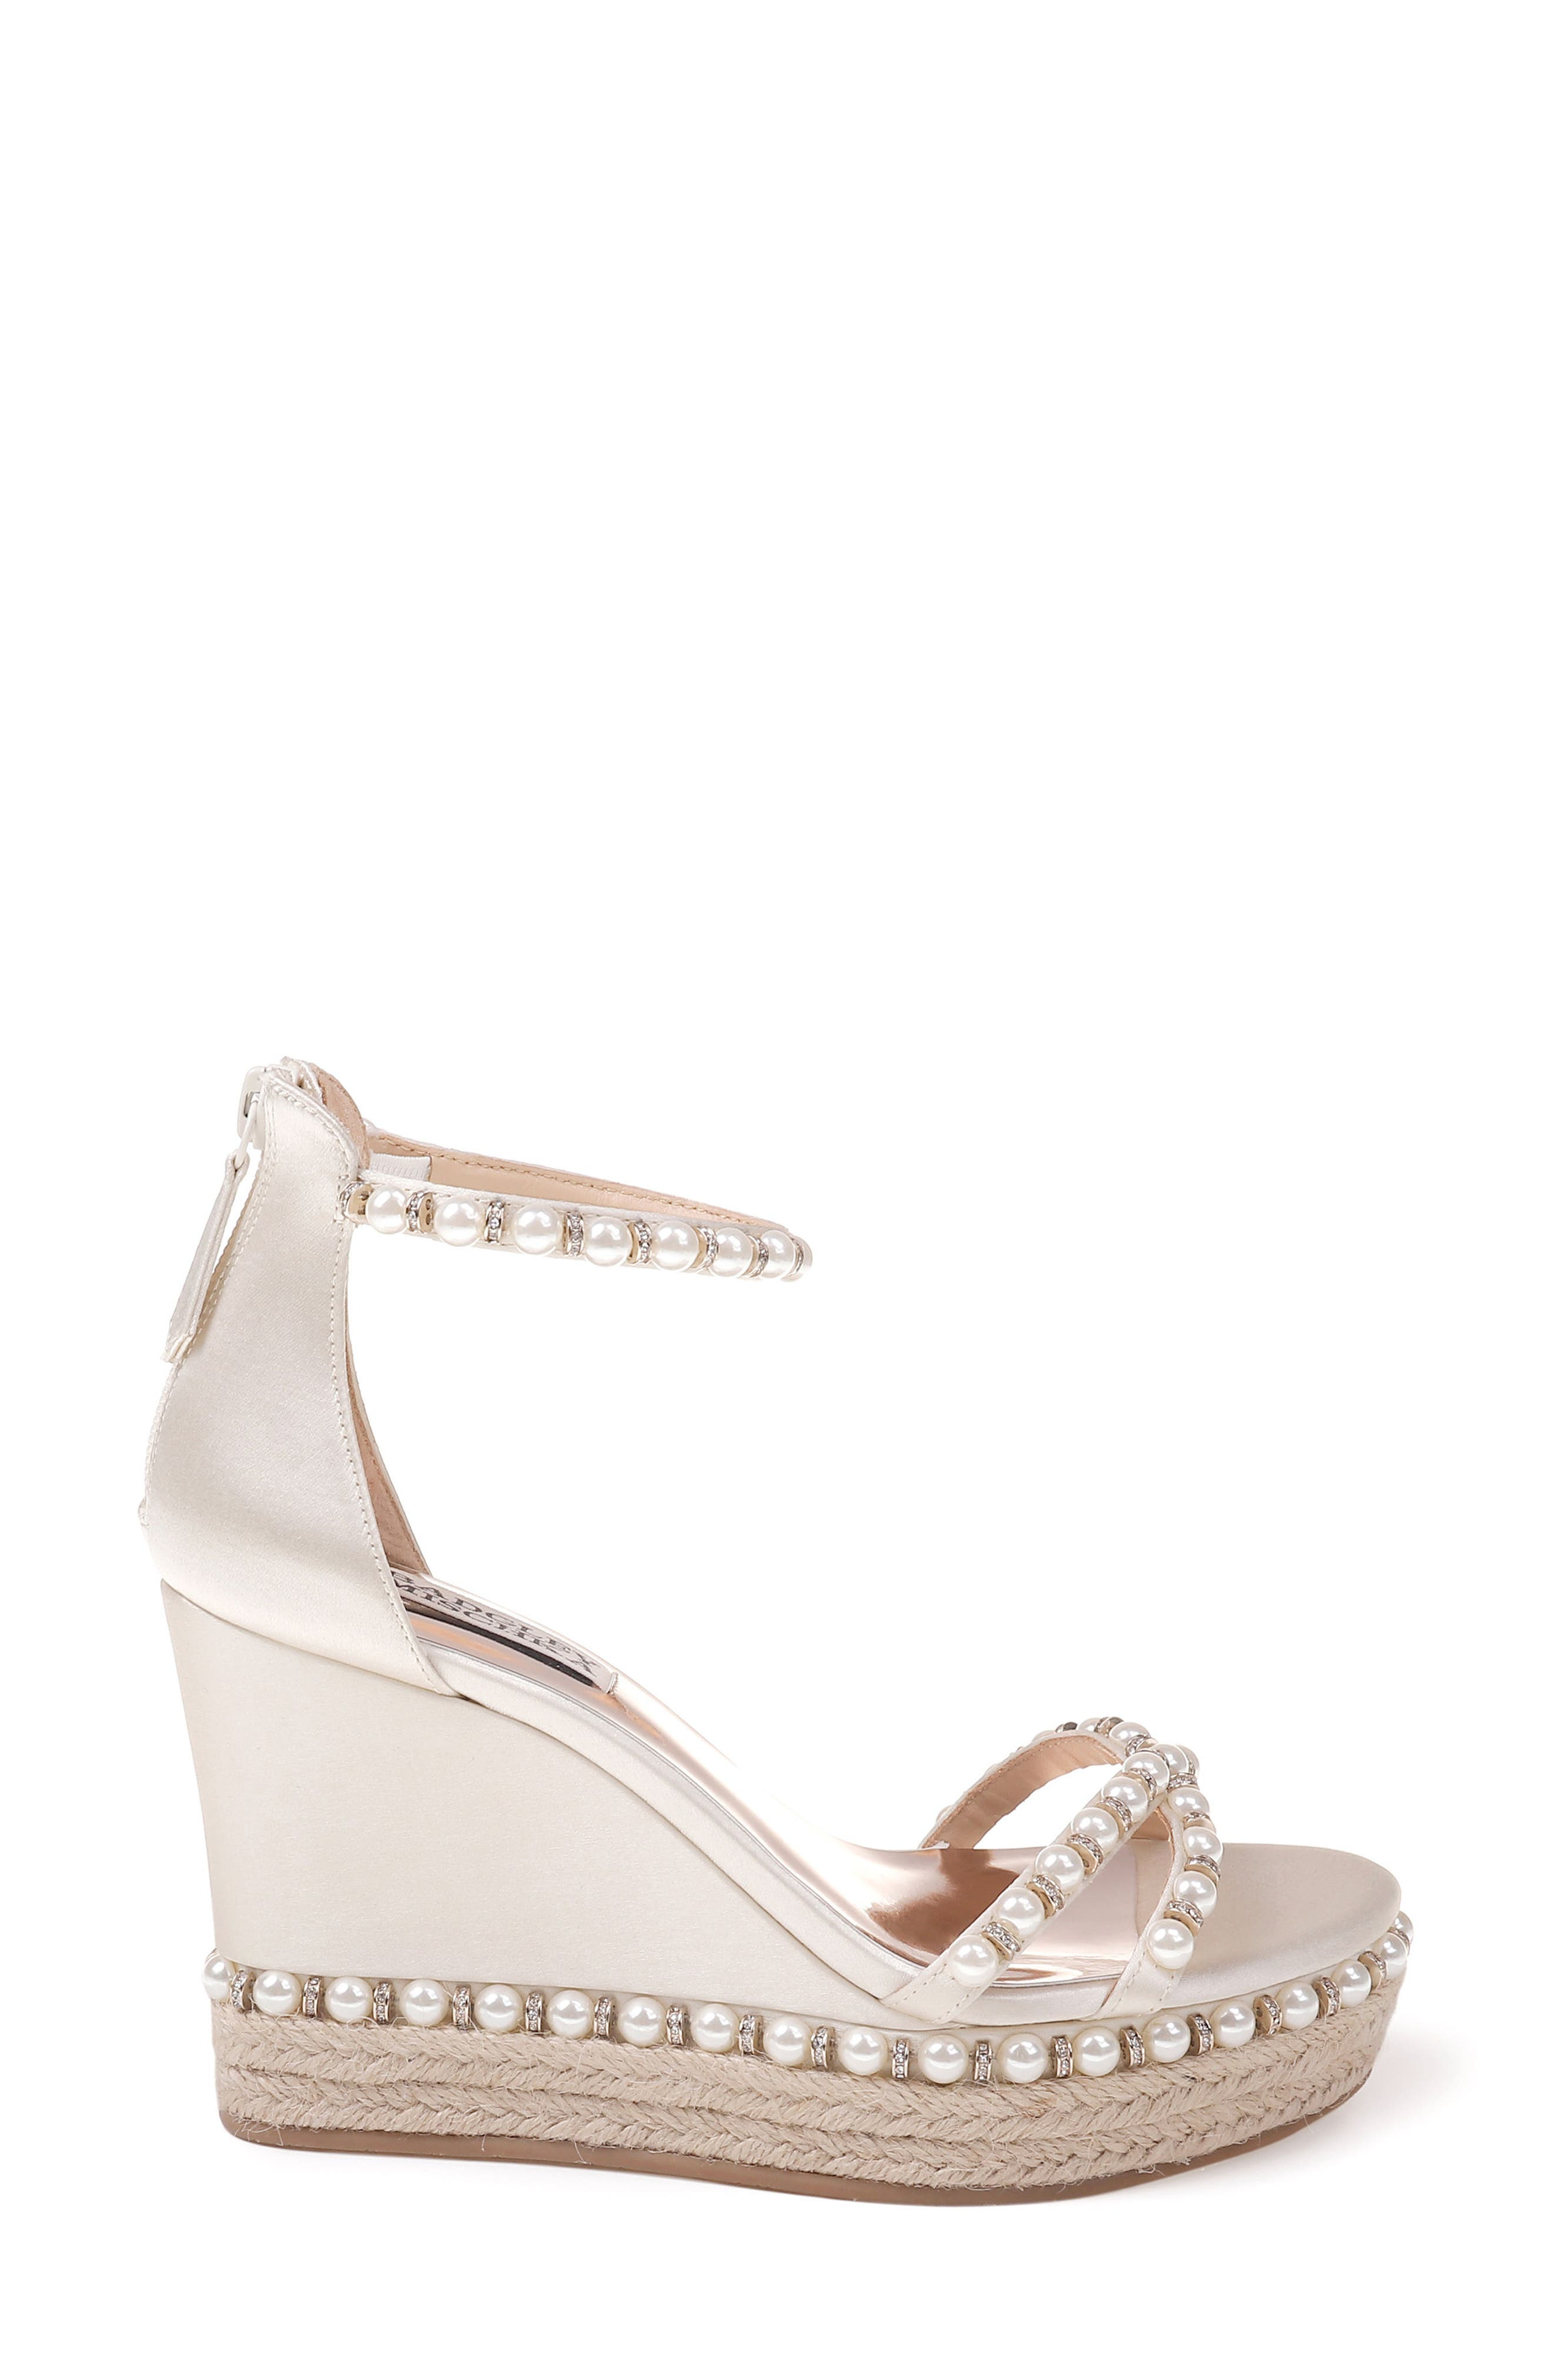 Sloan Wedge Sandal,                             Alternate thumbnail 3, color,                             Ivory Satin